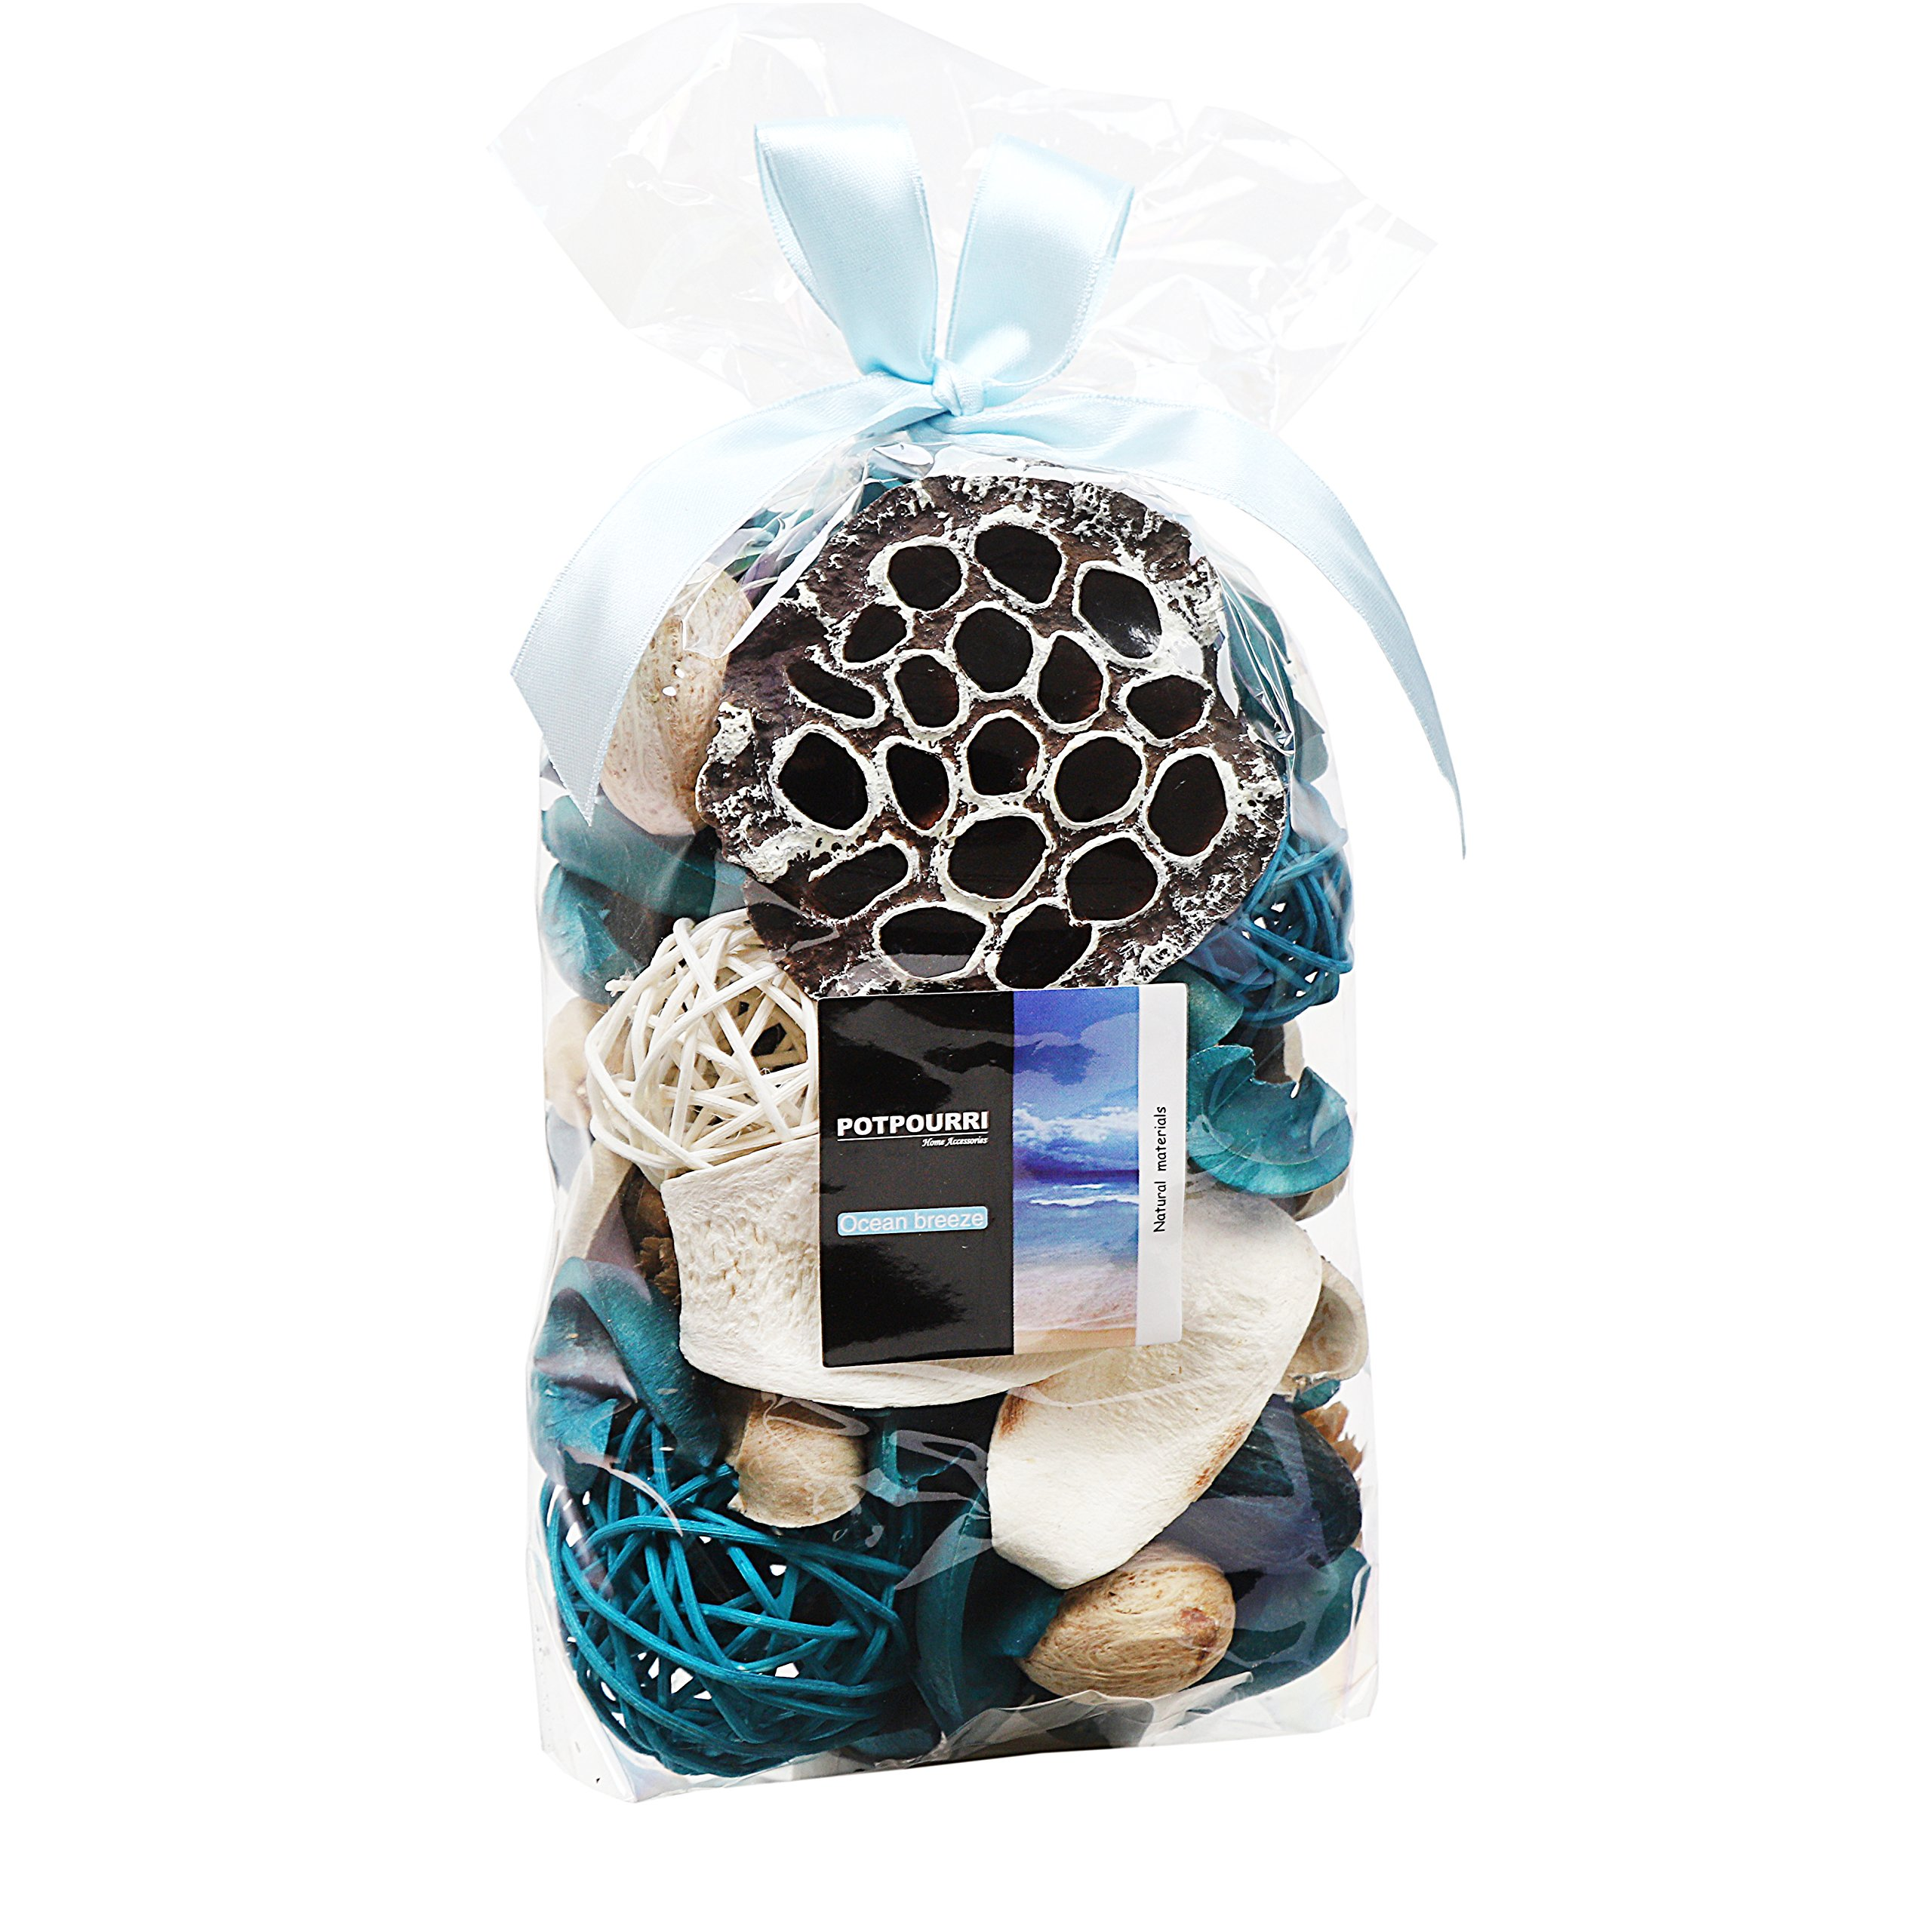 Qingbei Rina Ocean Scent Summer Potpourri Bag Decorative Perfume Sachet, Rattan Balls Lotus Pods Pine Cones Dried Flowers and Plants, 9.9 Ounce Turquoise Blue by Qingbei Rina (Image #1)